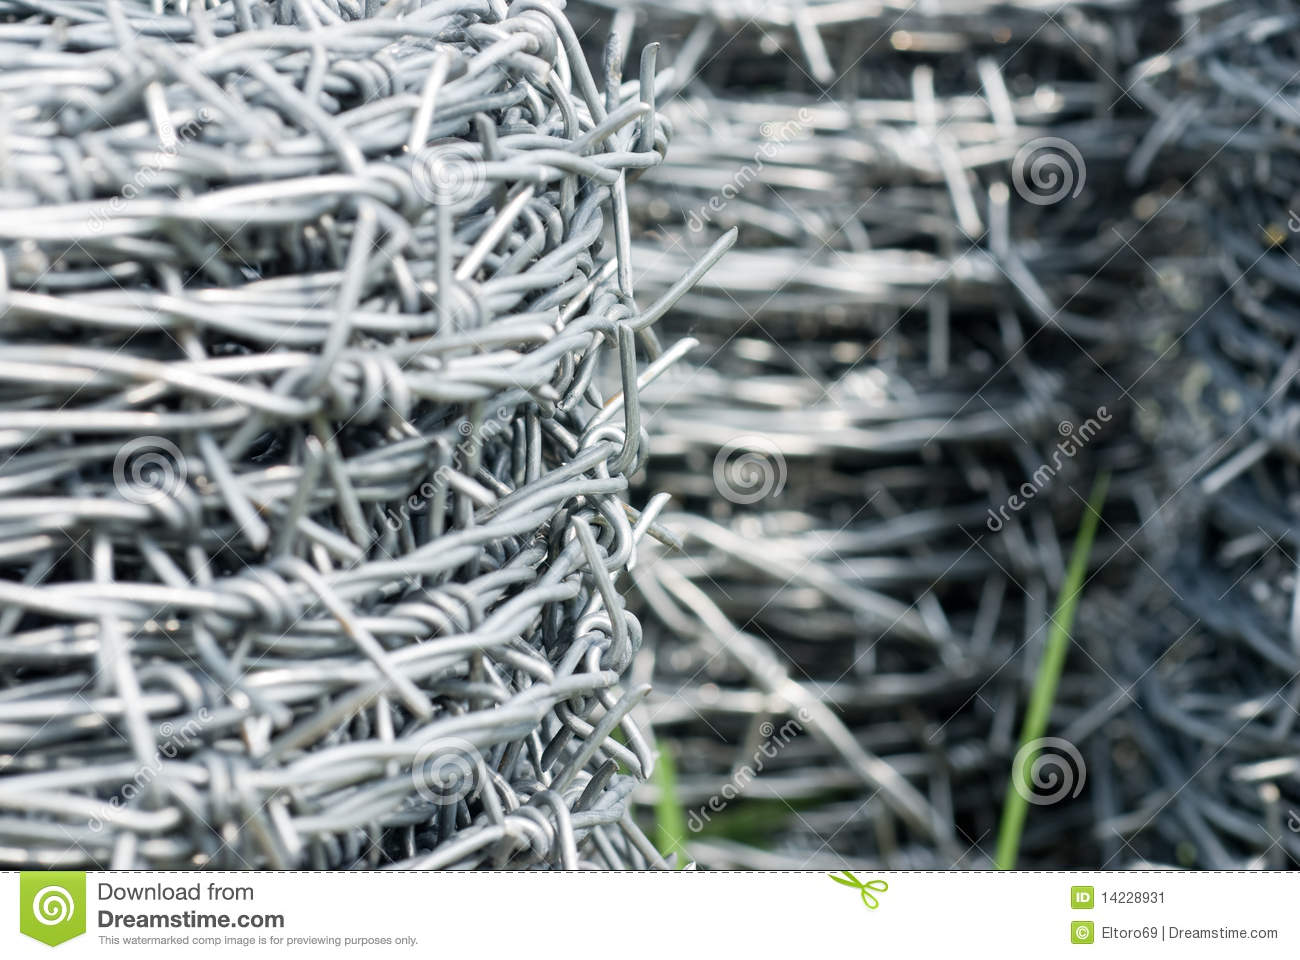 Coils of barbed wire stock image